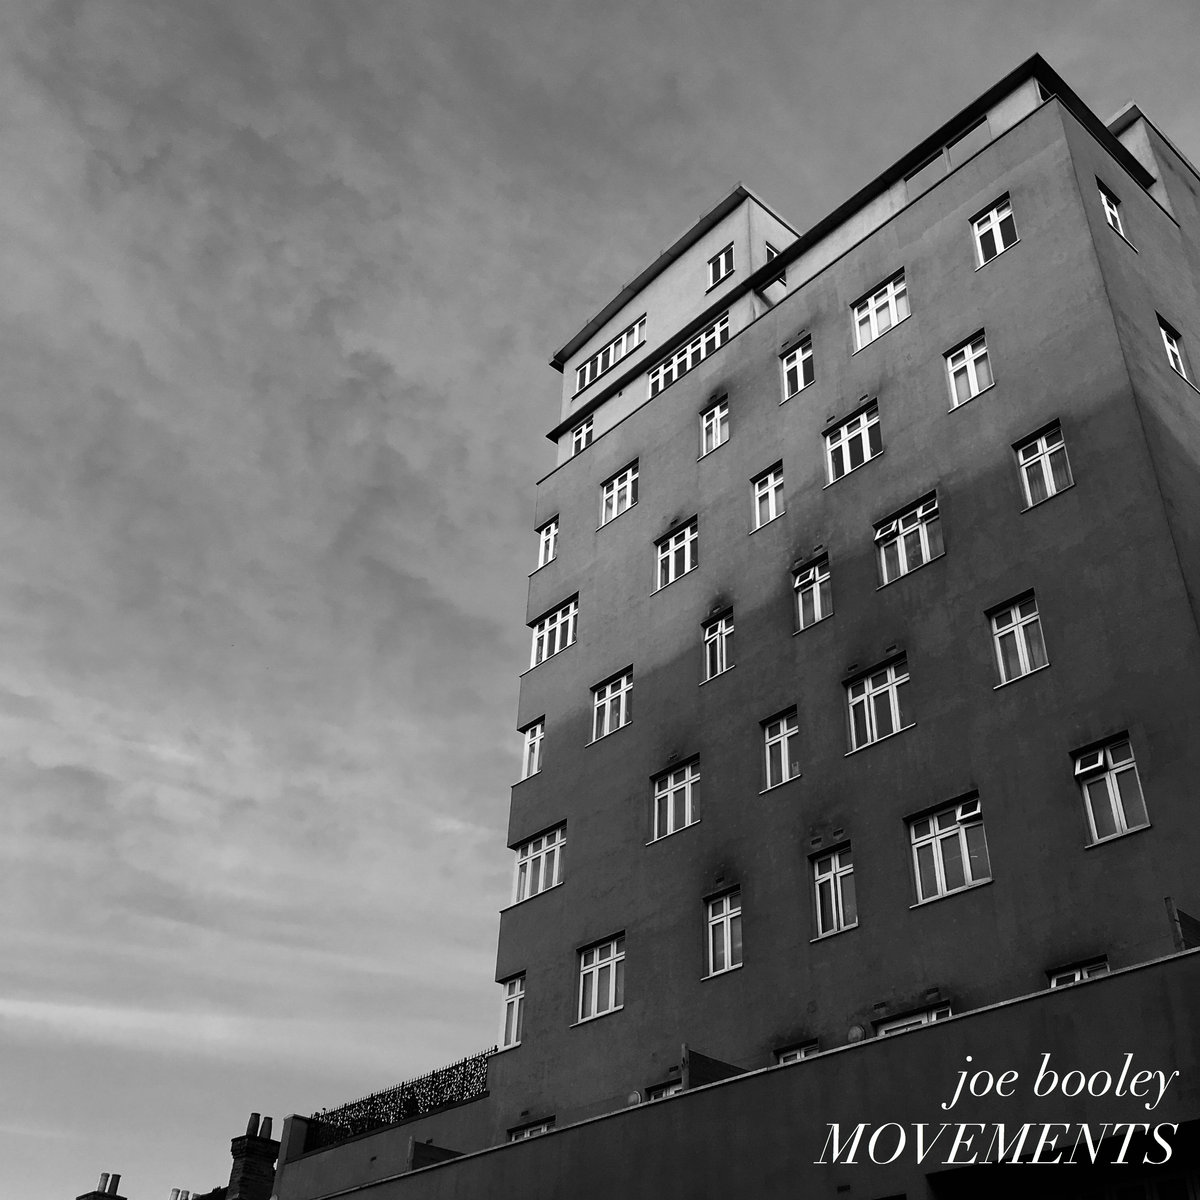 Joe Booley - Movements 12